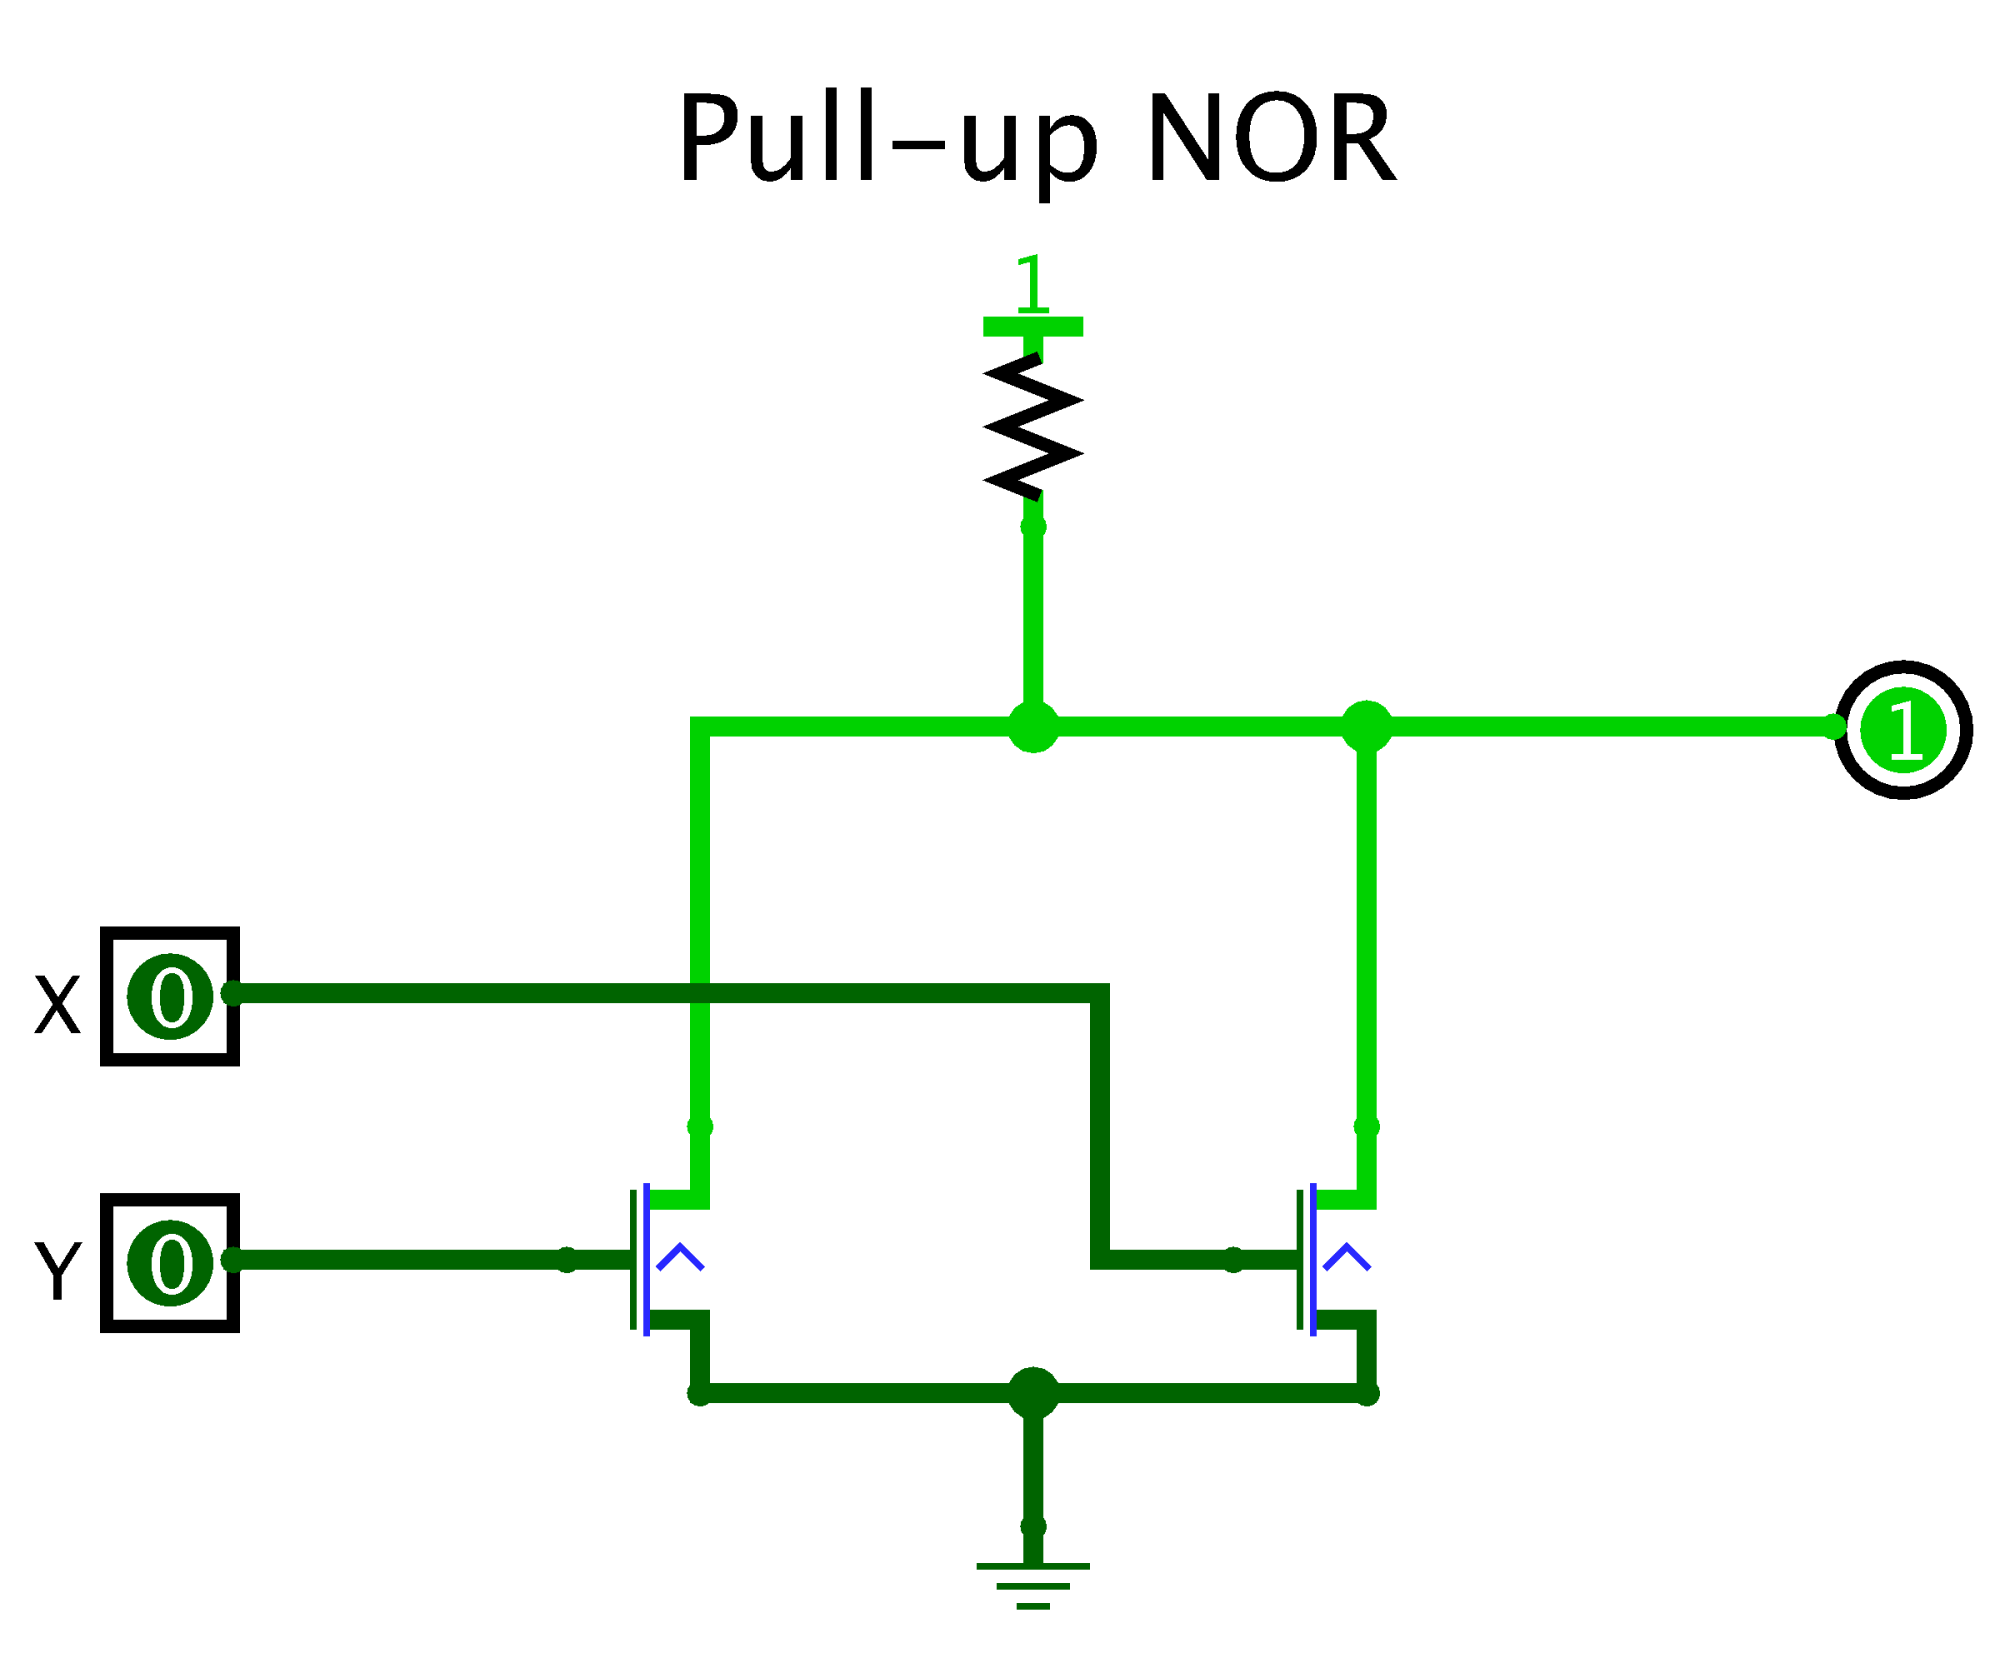 hight resolution of pull up and npn for nor